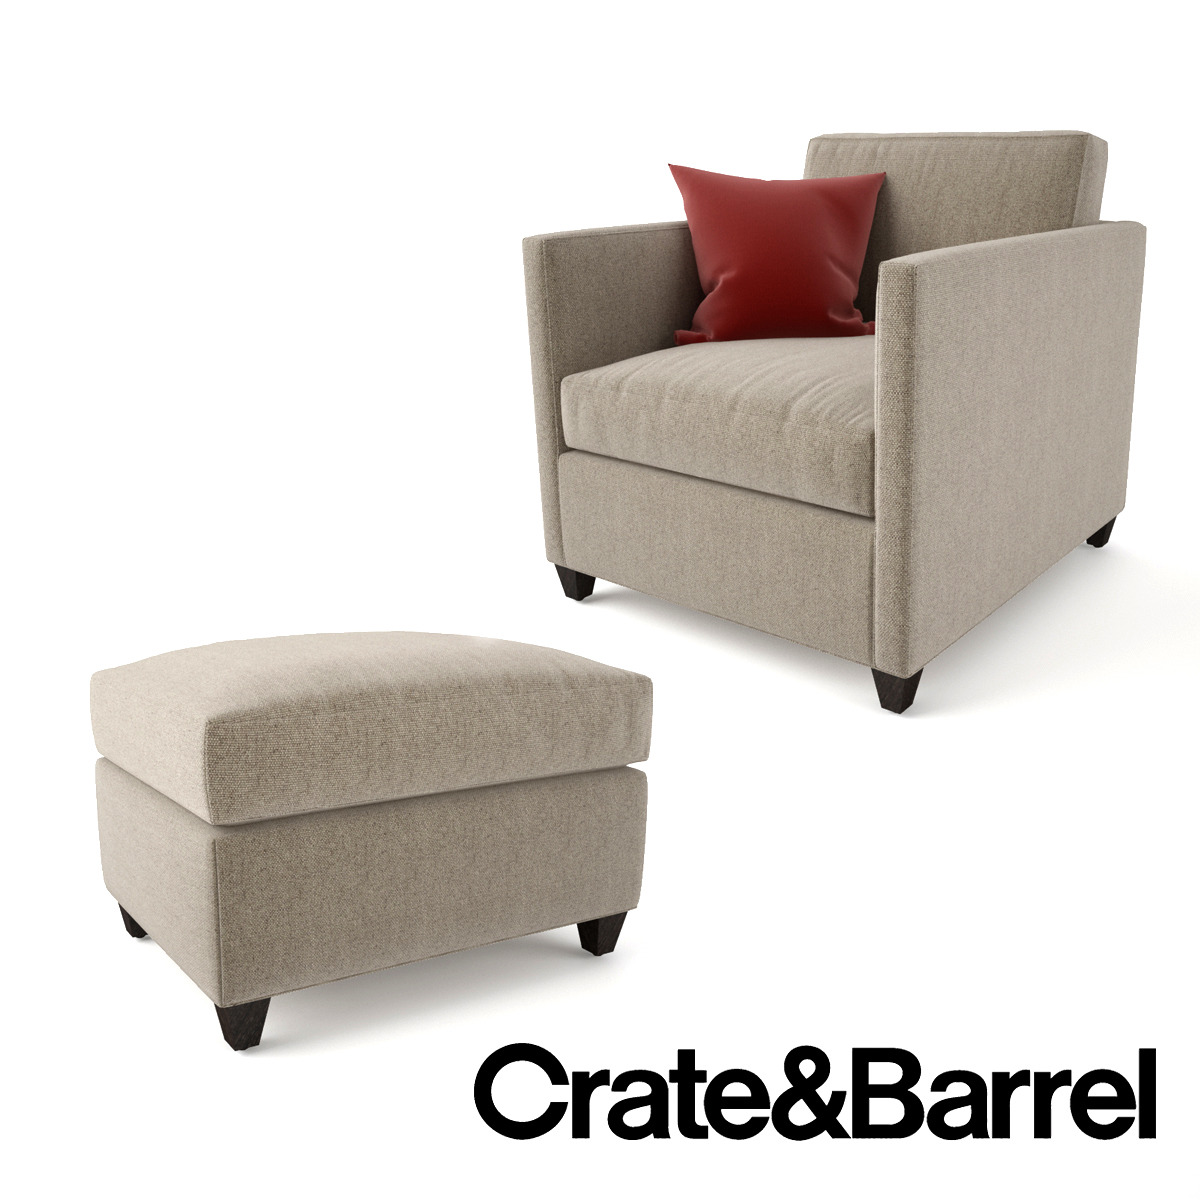 crate and barrel lounge chair swing outdoor bunnings dryden ottoman by emp otu 3docean